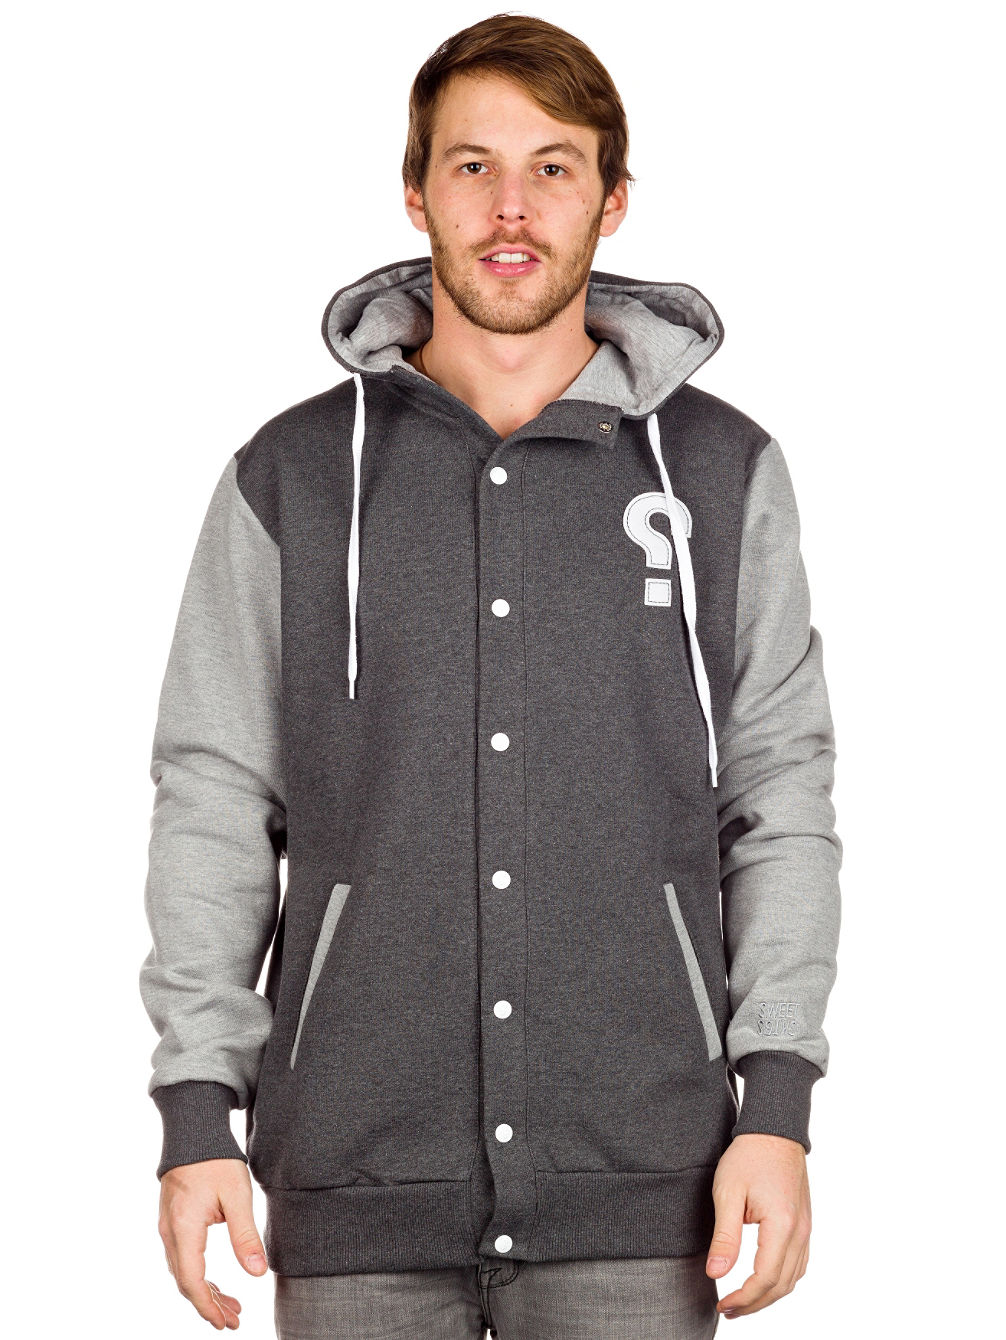 Baller Button-Up Zip Hoodie